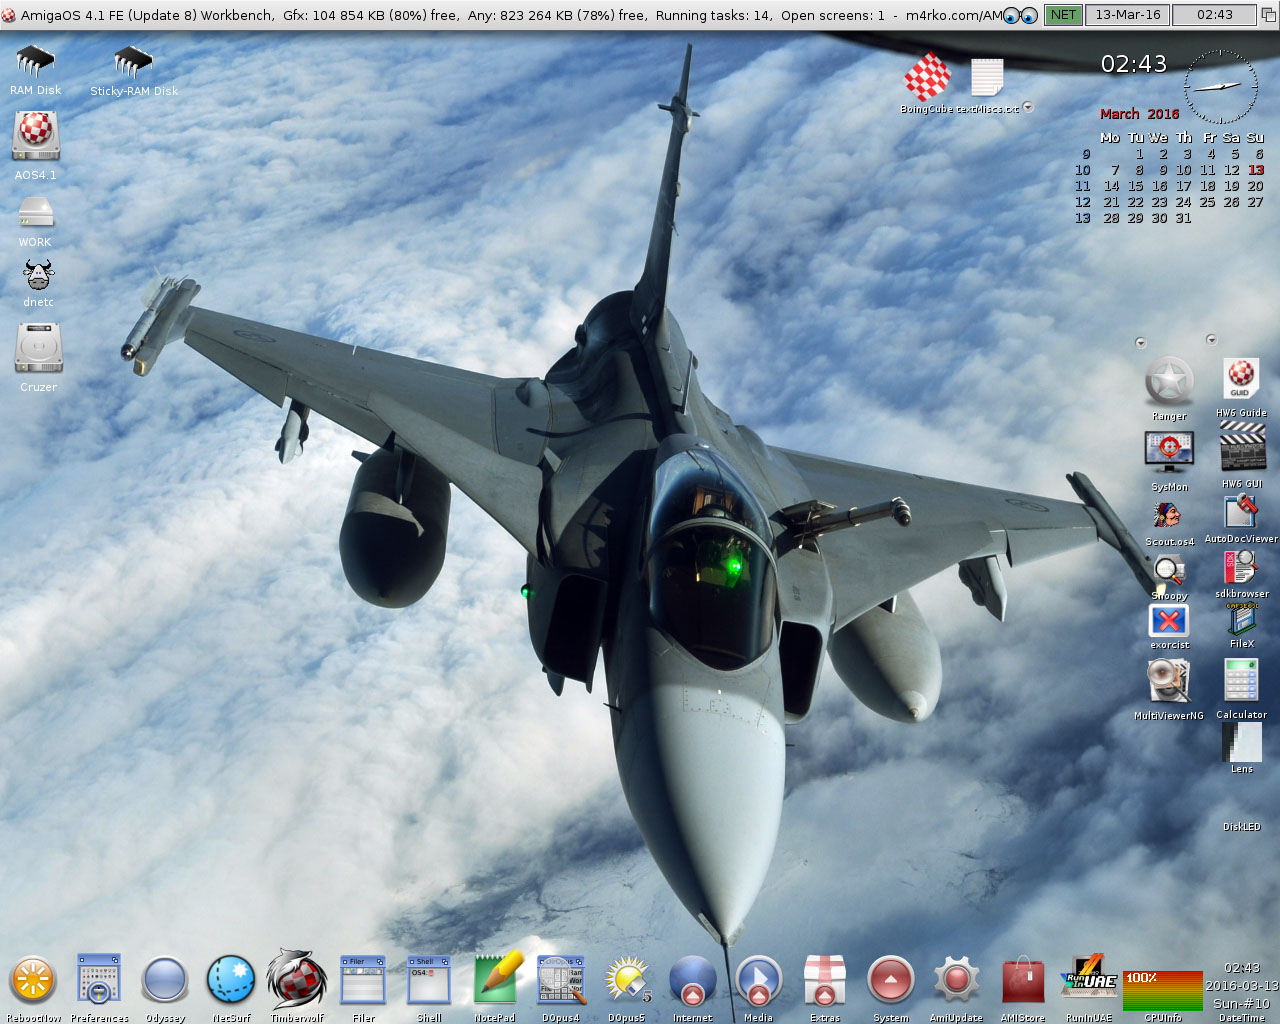 AmigaOS 4.1 FE Workbench with JAS 39 Gripen backdrop